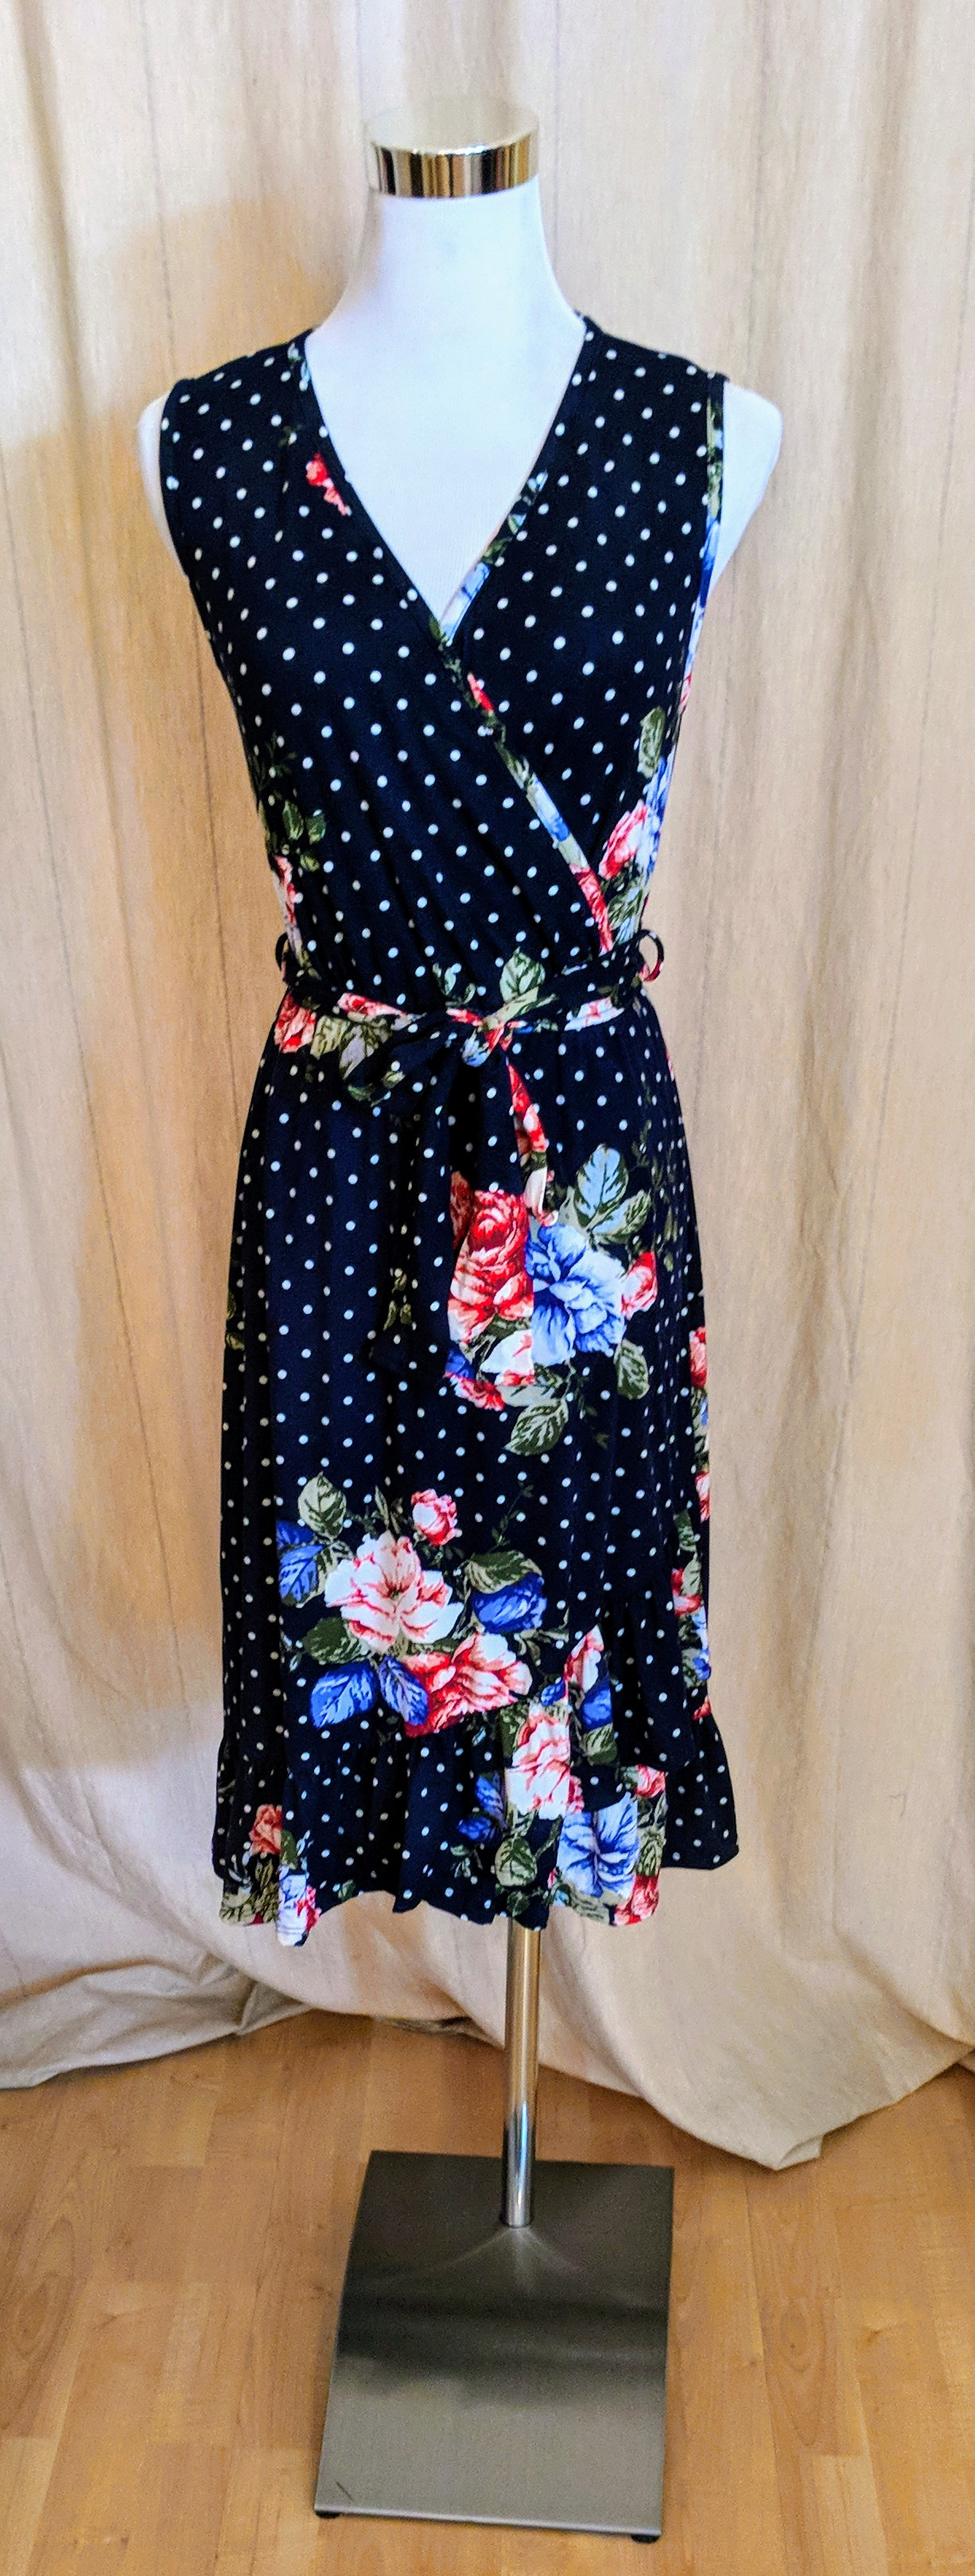 Navy sleeveless polka-dot and floral wrap dress with ruffled hem and tie on waist.